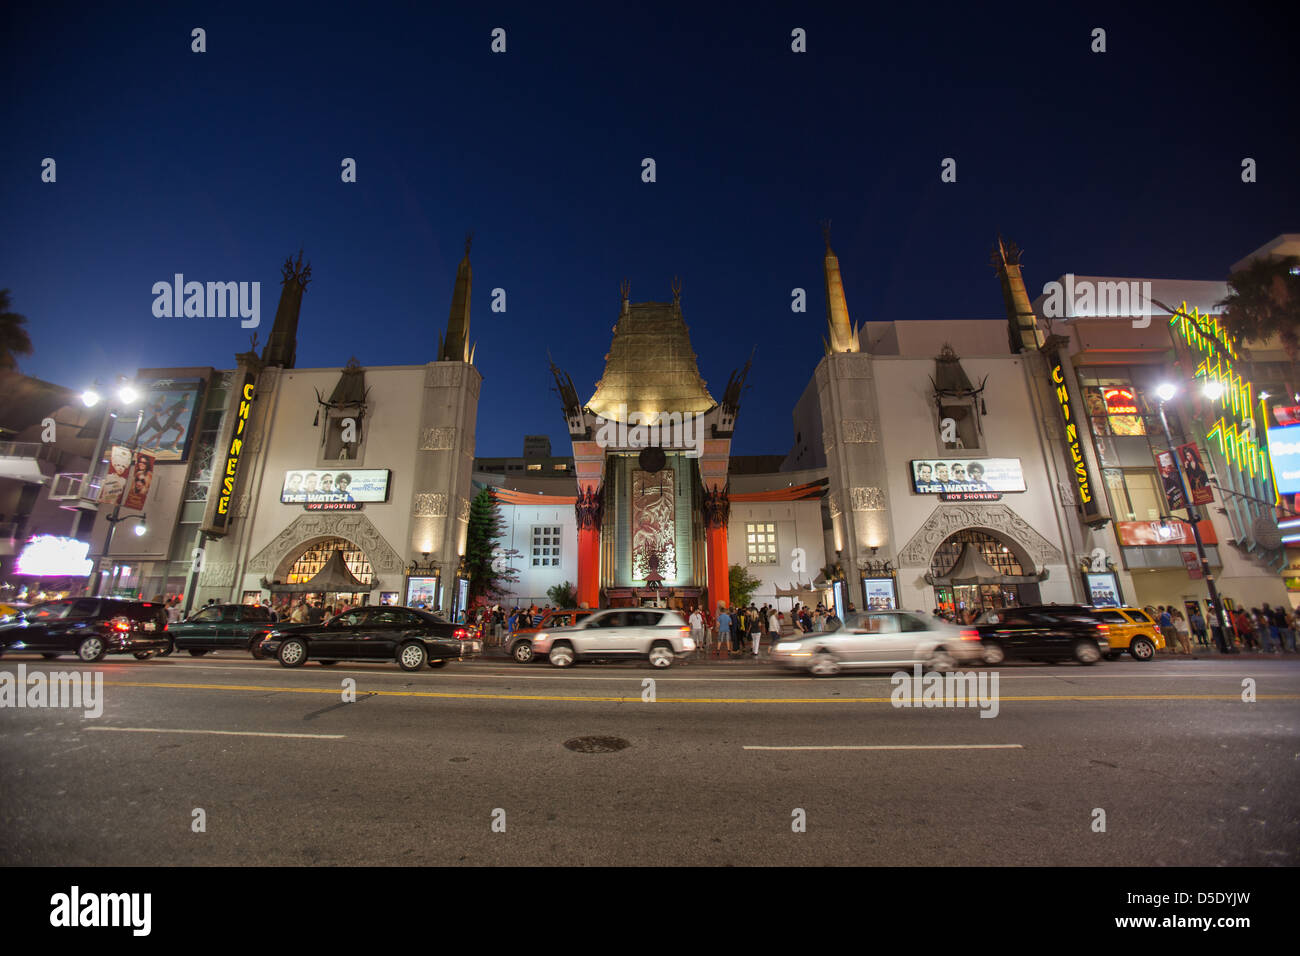 TCL (Grauman's) Chinese Theatre in Hollywood, Los Angeles, CA - Stock Image